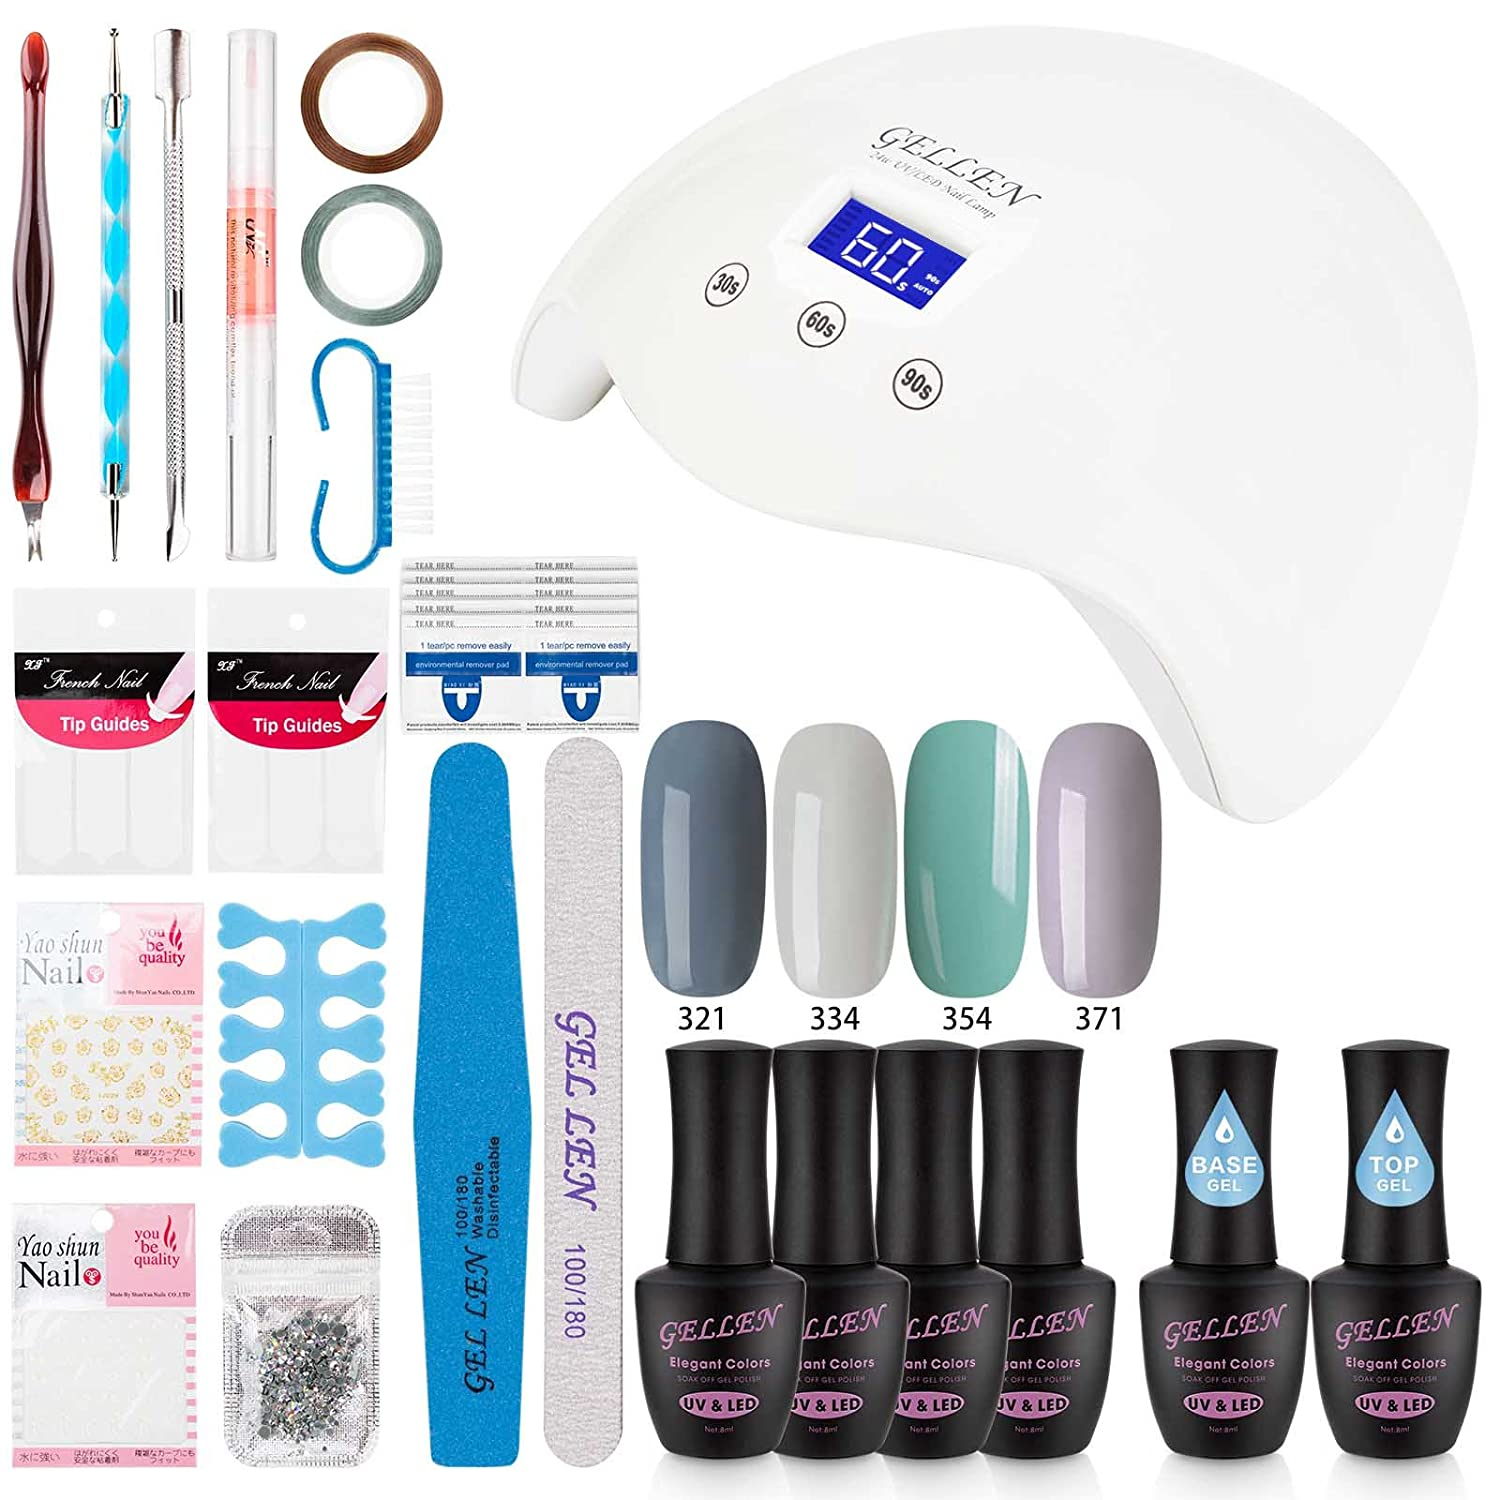 Gellen Gel Nail Polish Starter Kit with 24W LED lamp Base Top Coat, Manicure Tools Popular Nail Art Designs #2